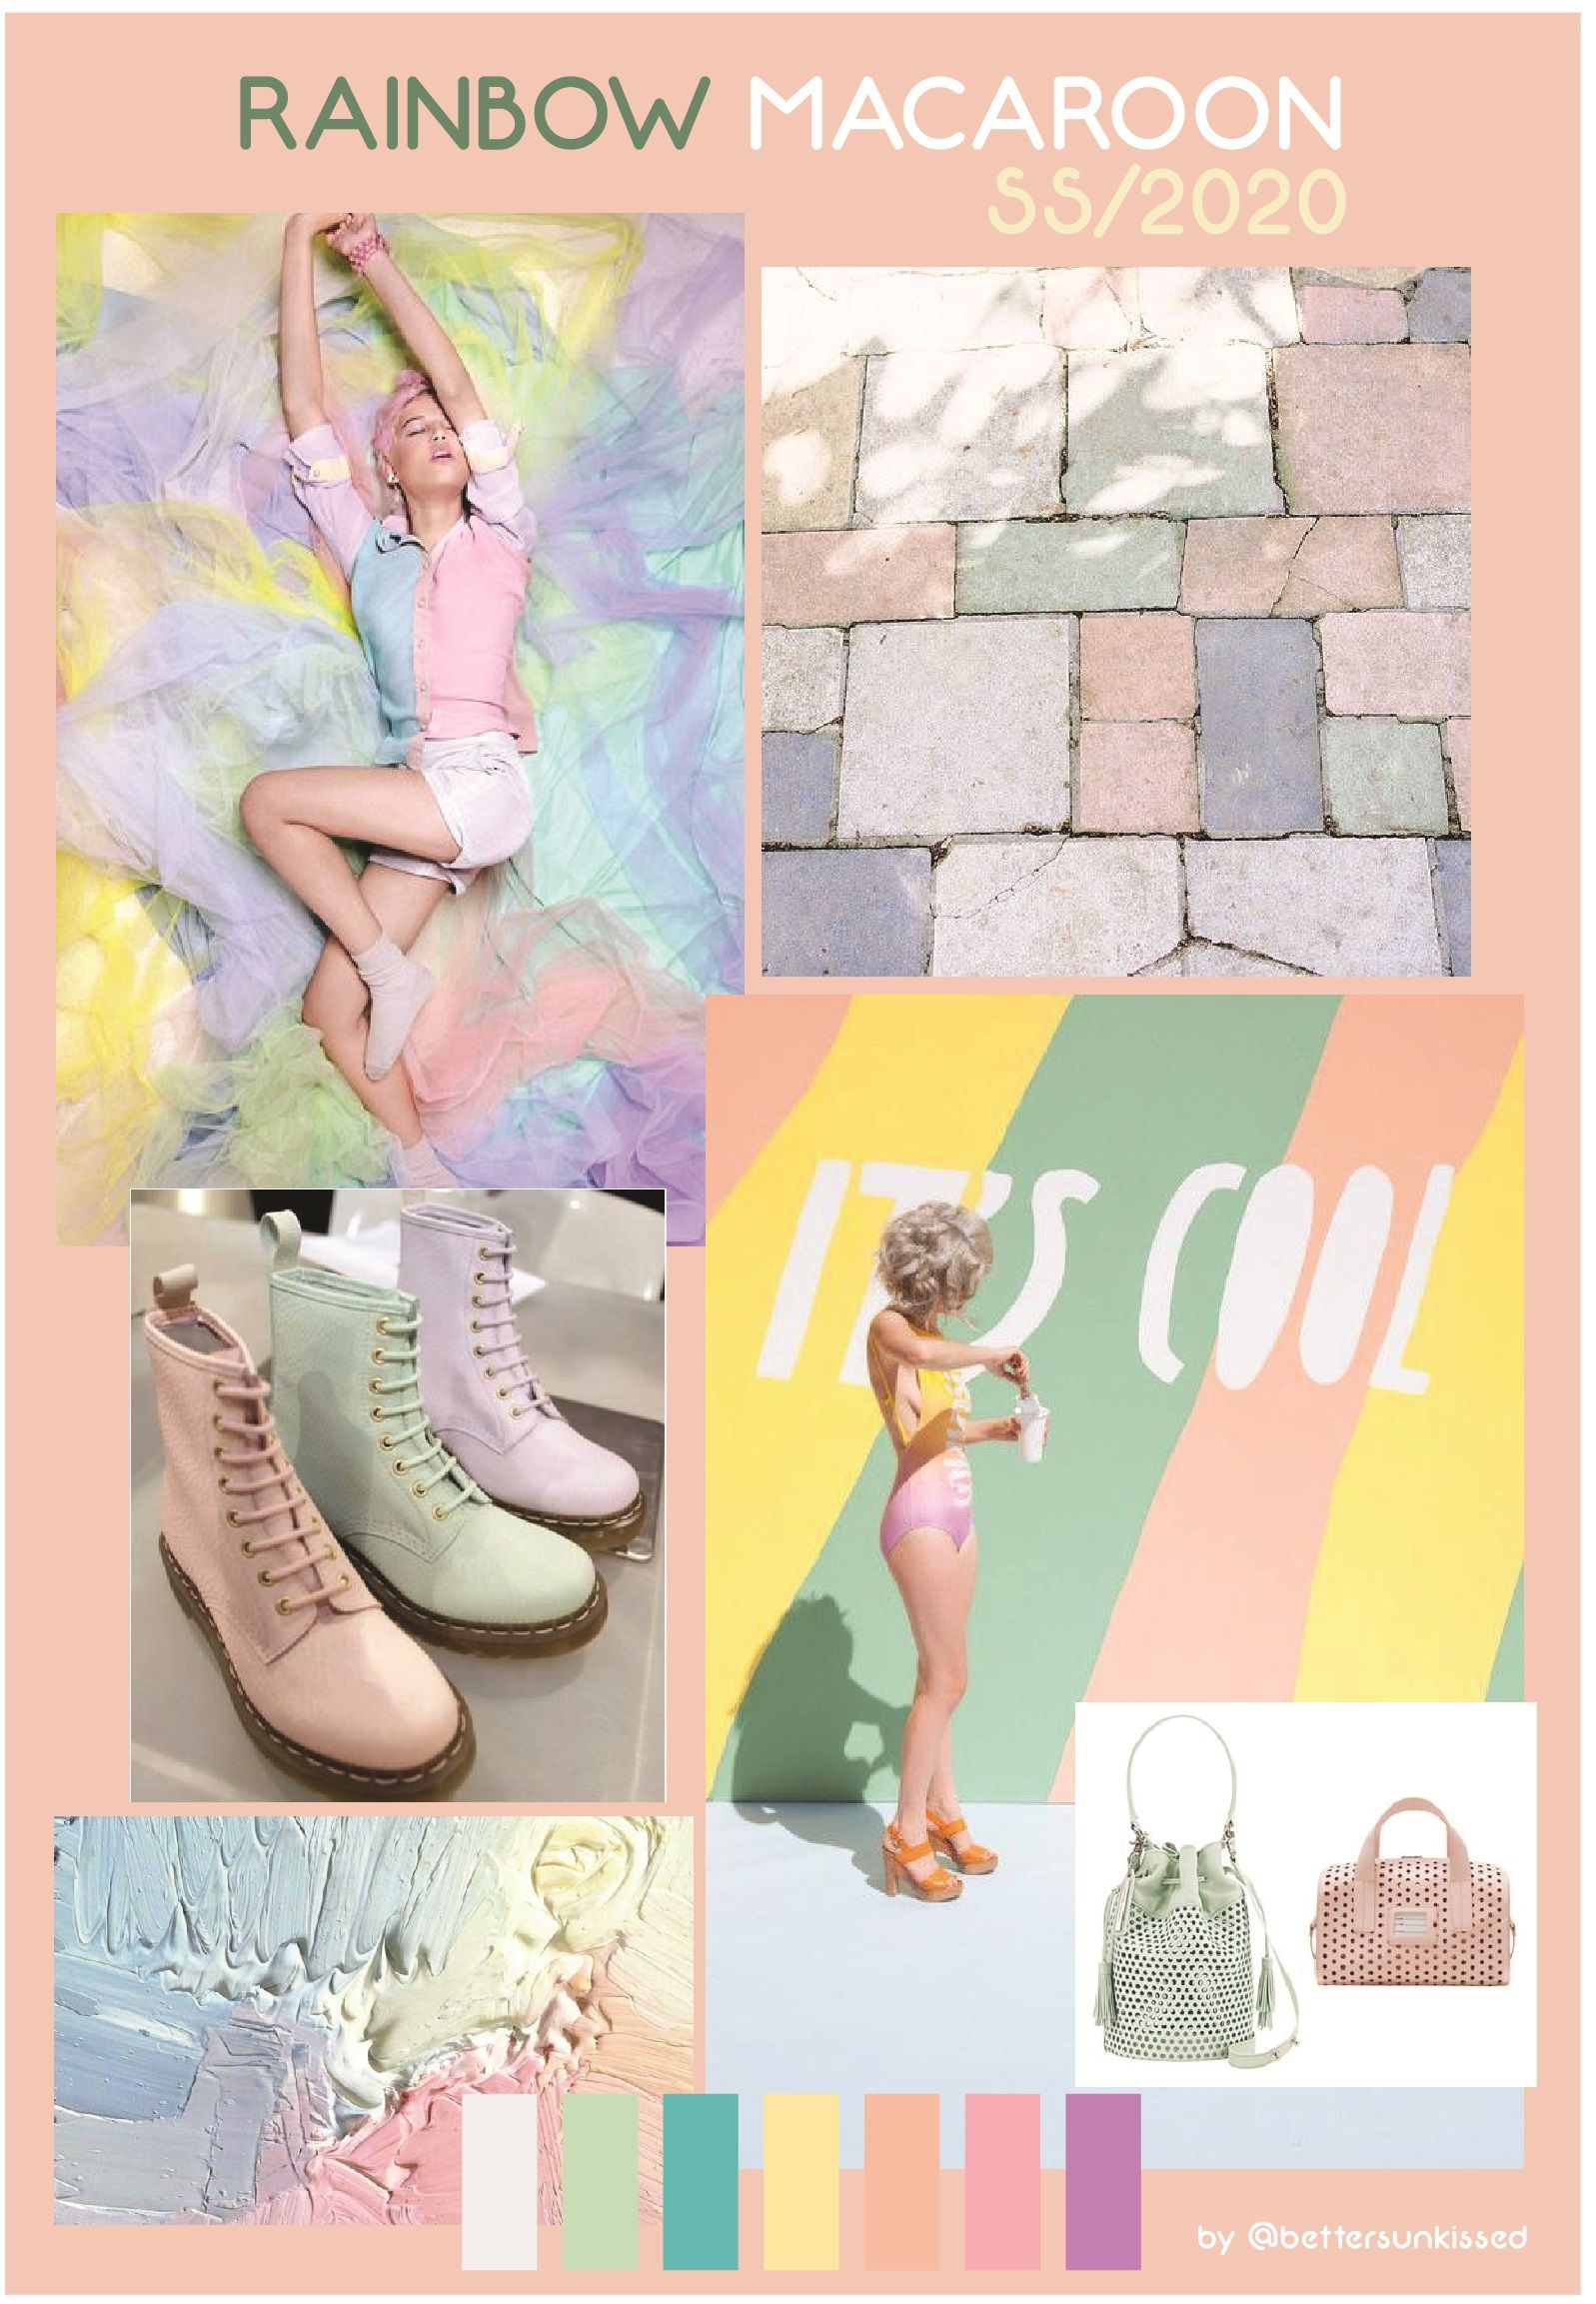 COLOR TREND FORECAST SS/2020 - SPRING SUMMER 2020 RAINBOW MACAROON